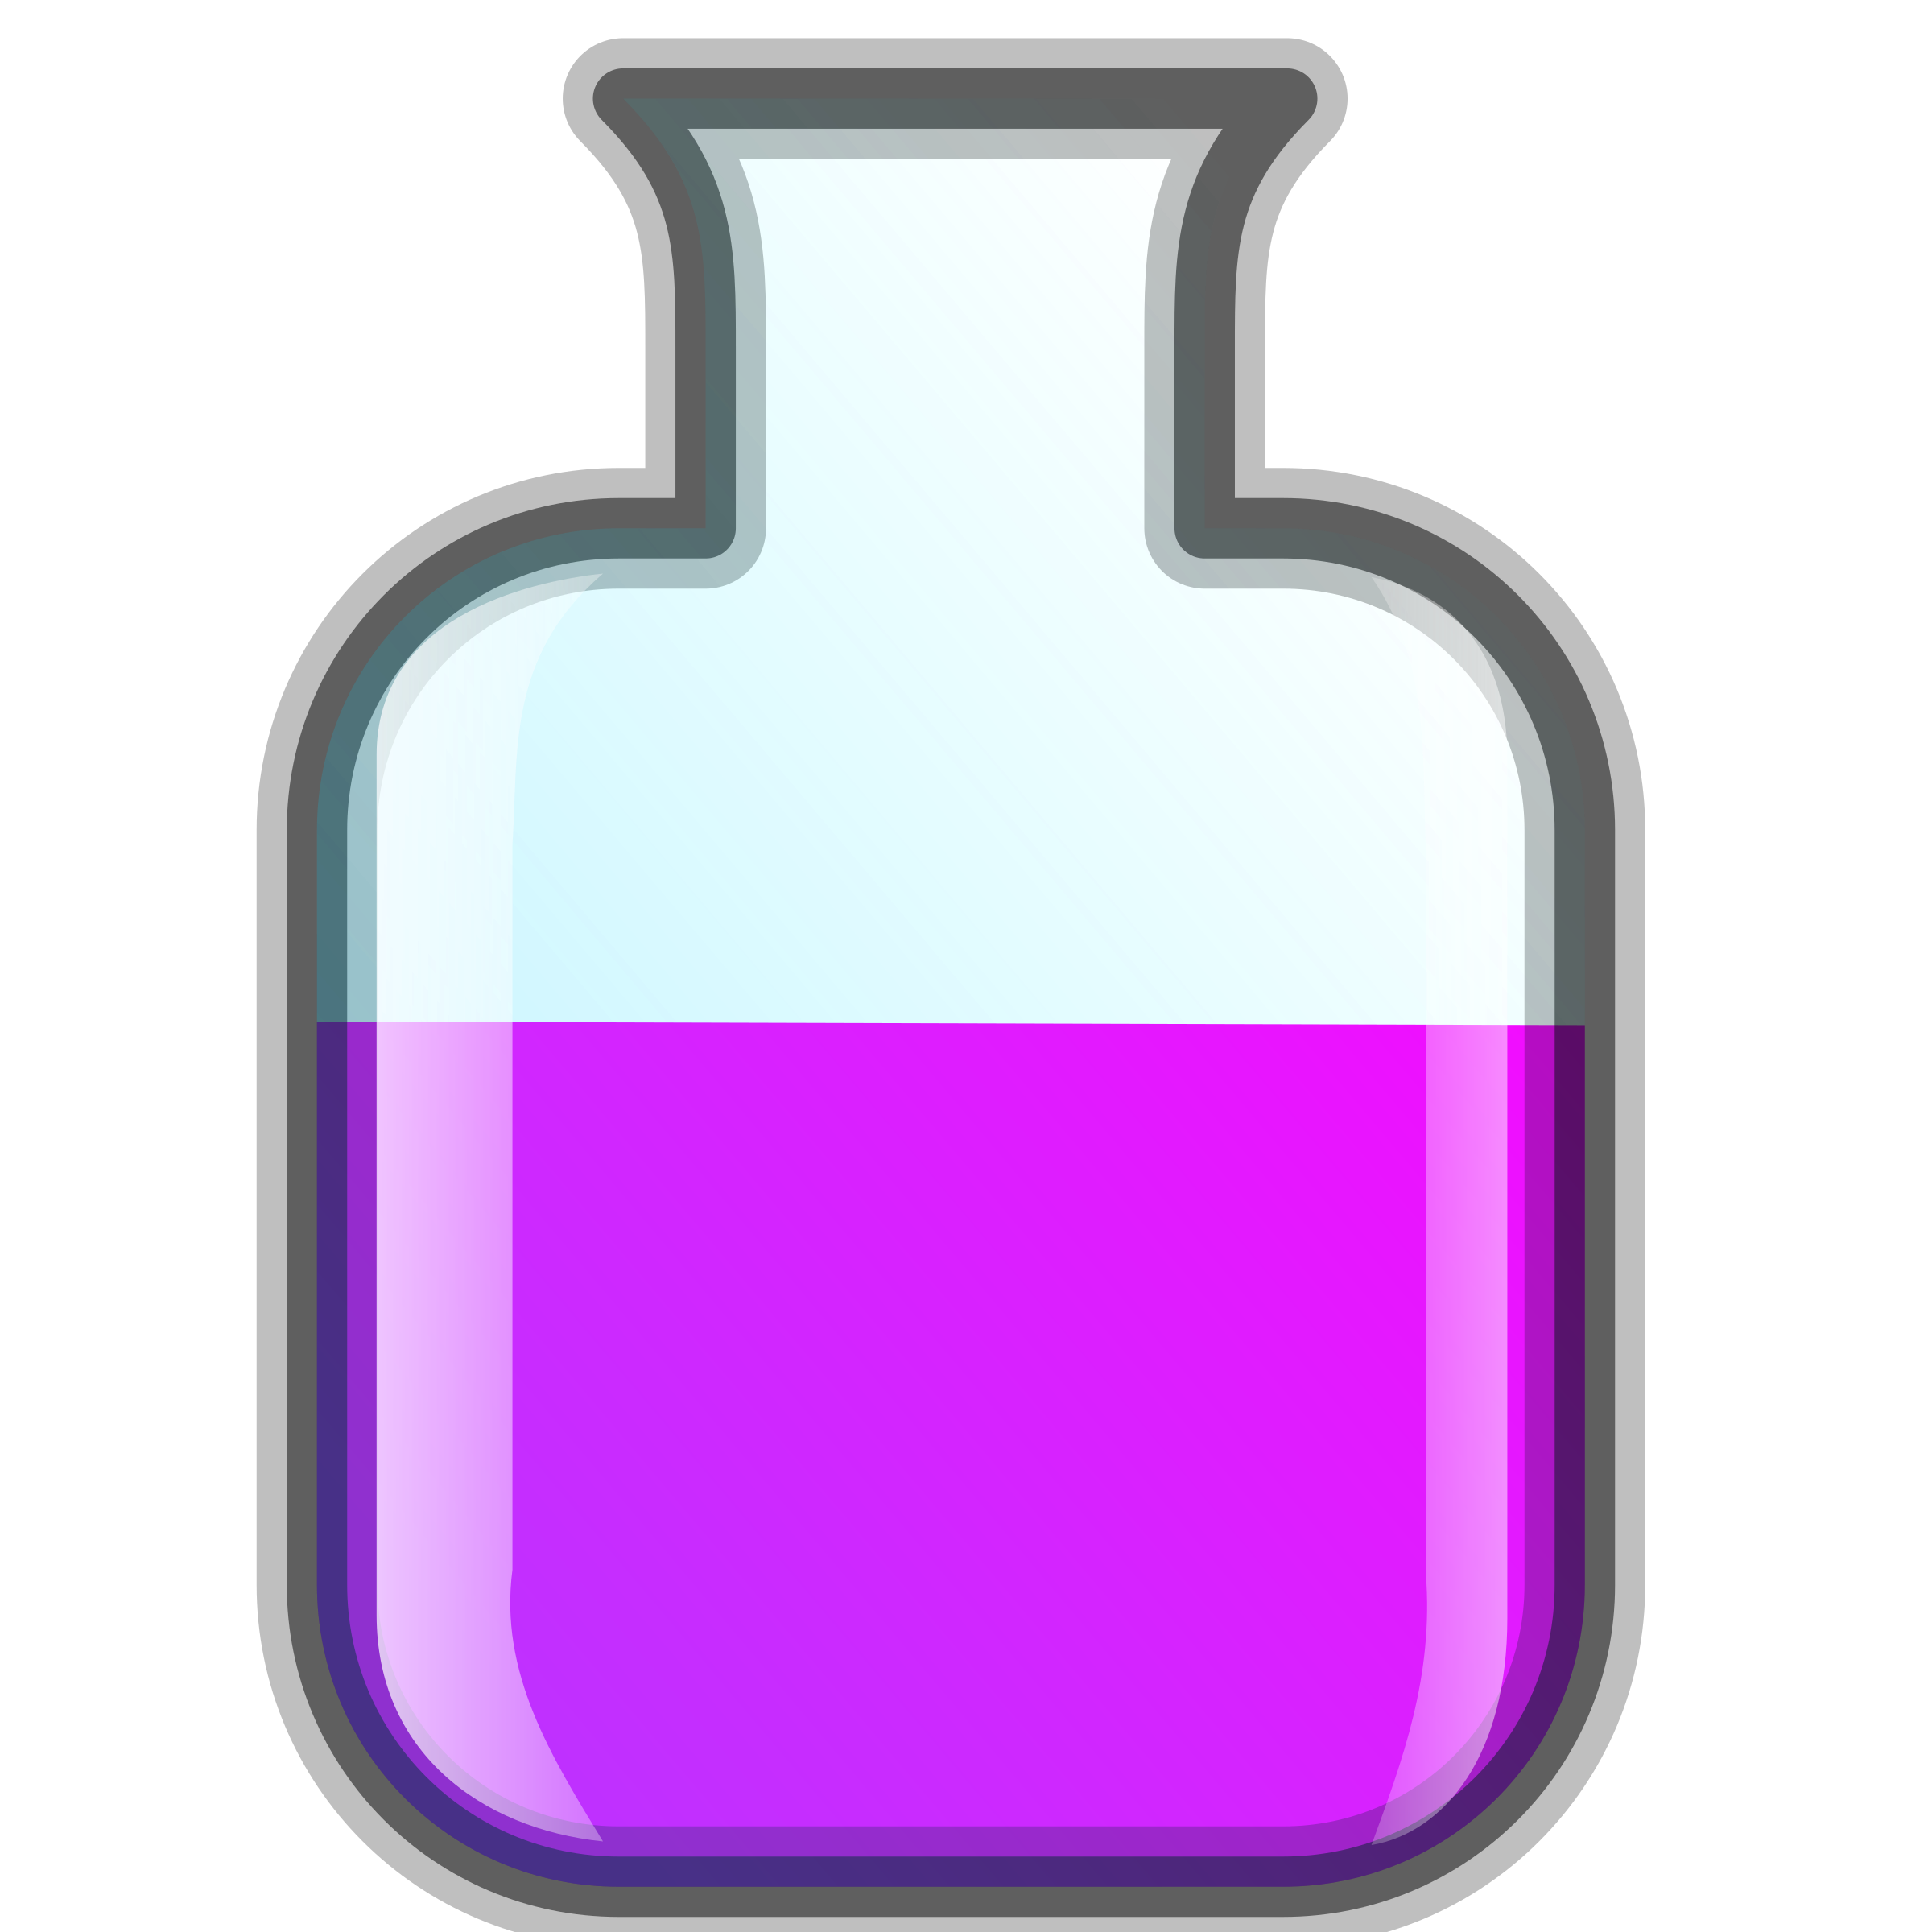 Icon big image png. Lab clipart lab material